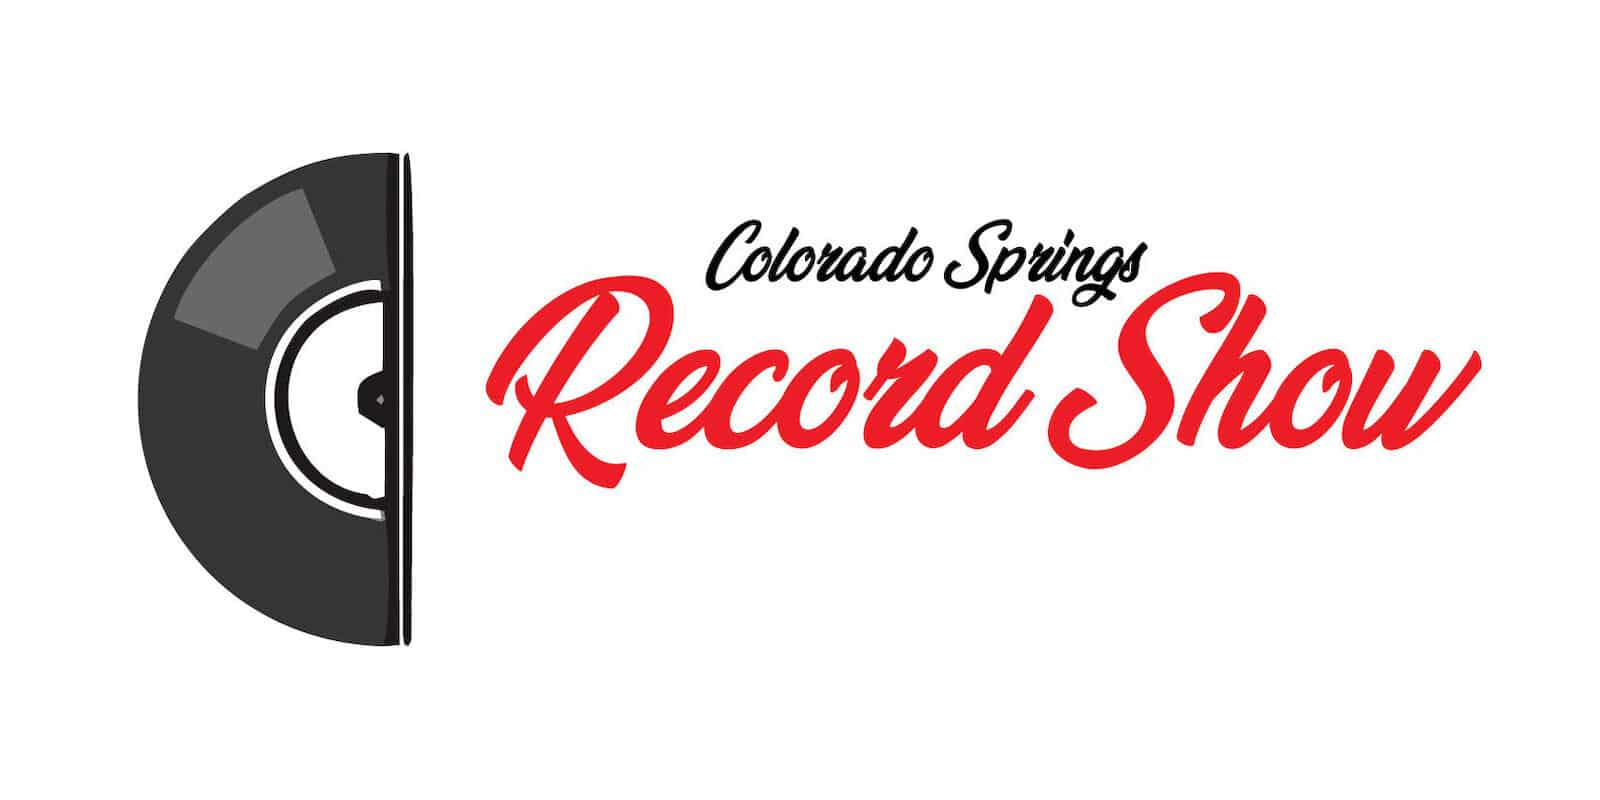 Image of the Colorado Springs Record Show flyer